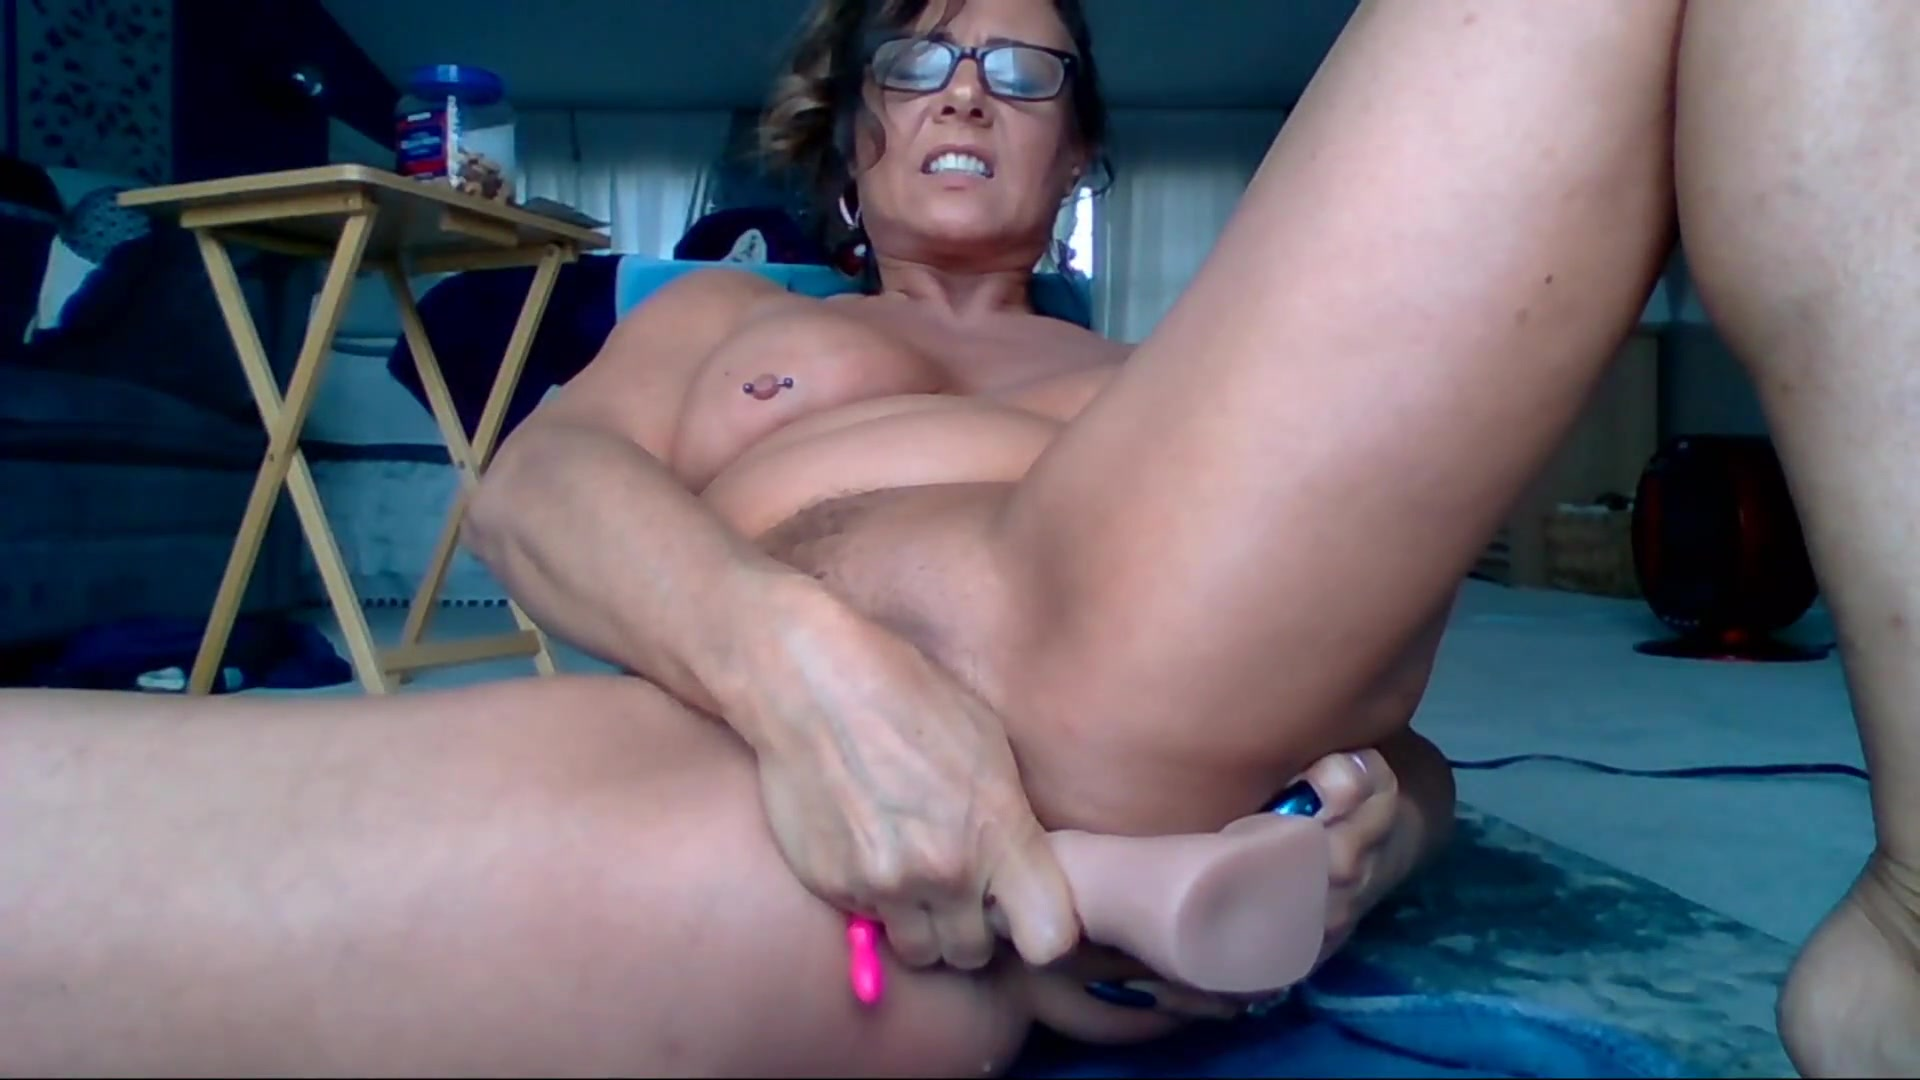 sweetumspie gianna fucking her pussy with dildo